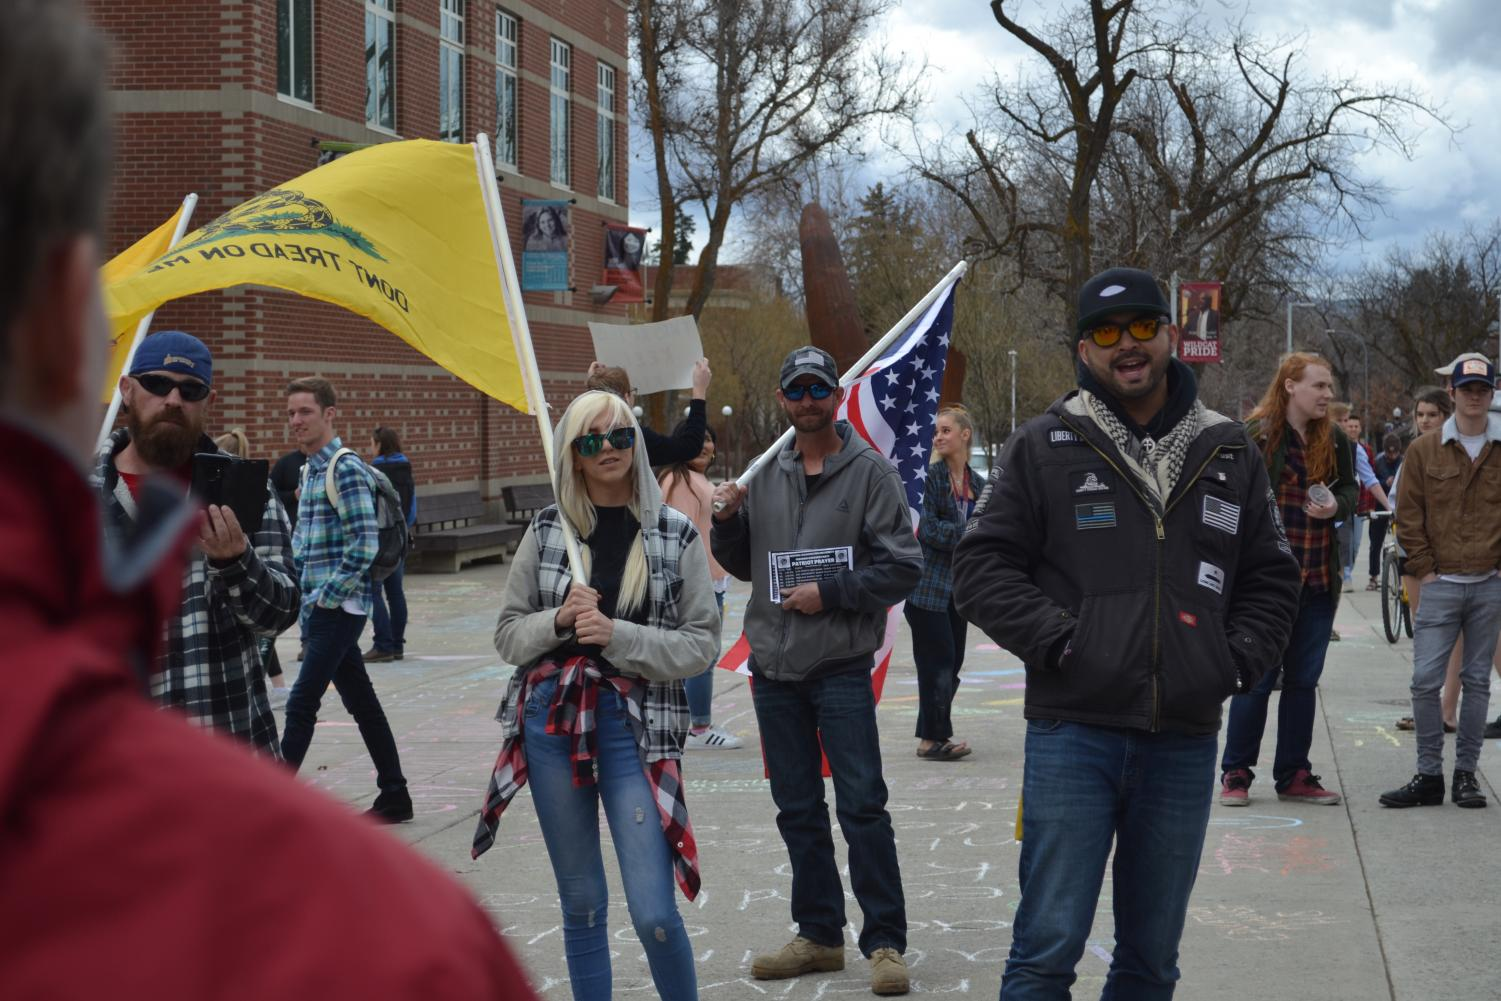 Patriot Prayer members debate with CWU students outside of Black Hall. Joey Gibson, founder of Patriot Prayer, can be seen in the black jacket and red sunglasses.